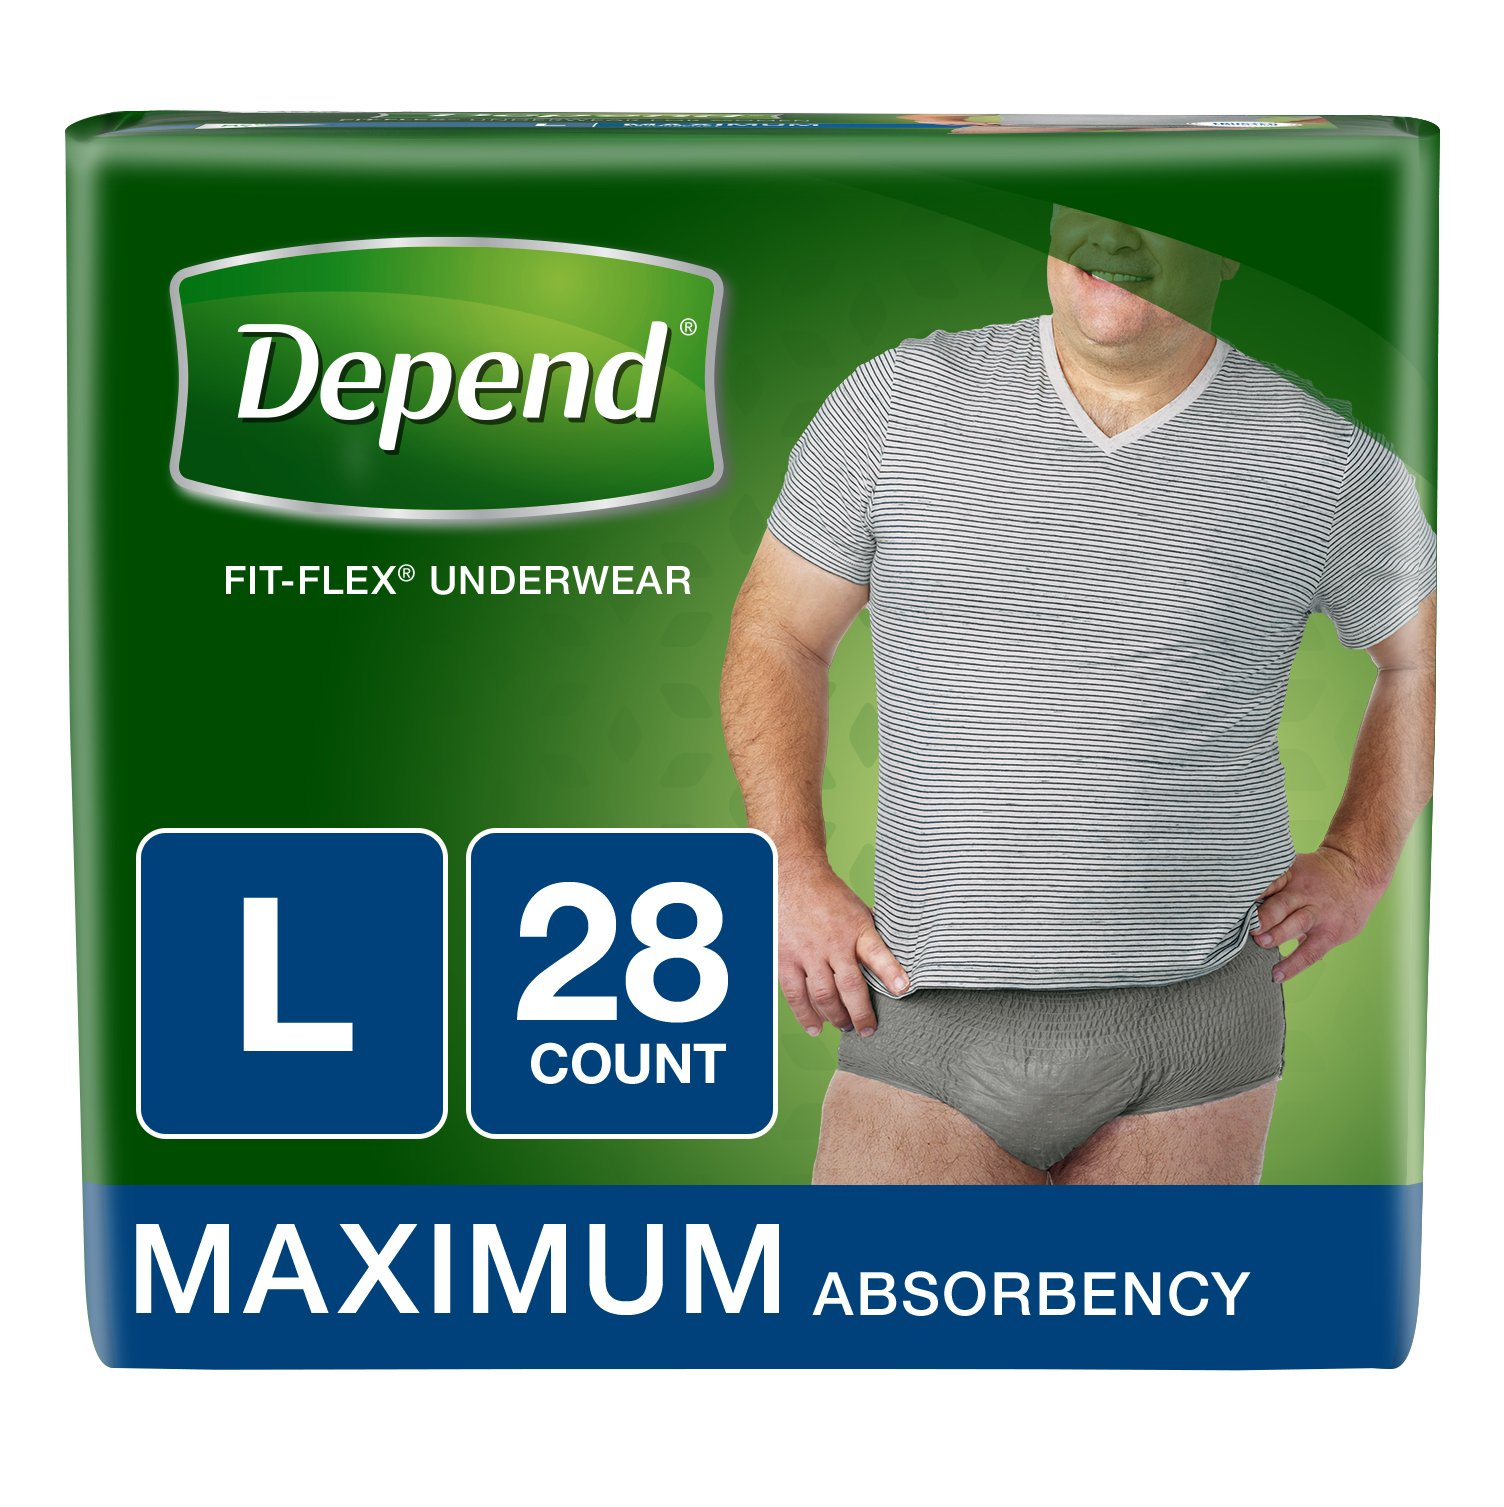 Depend FIT-FLEX Incontinence Underwear for Men, Maximum Absorbency, L, Gray,